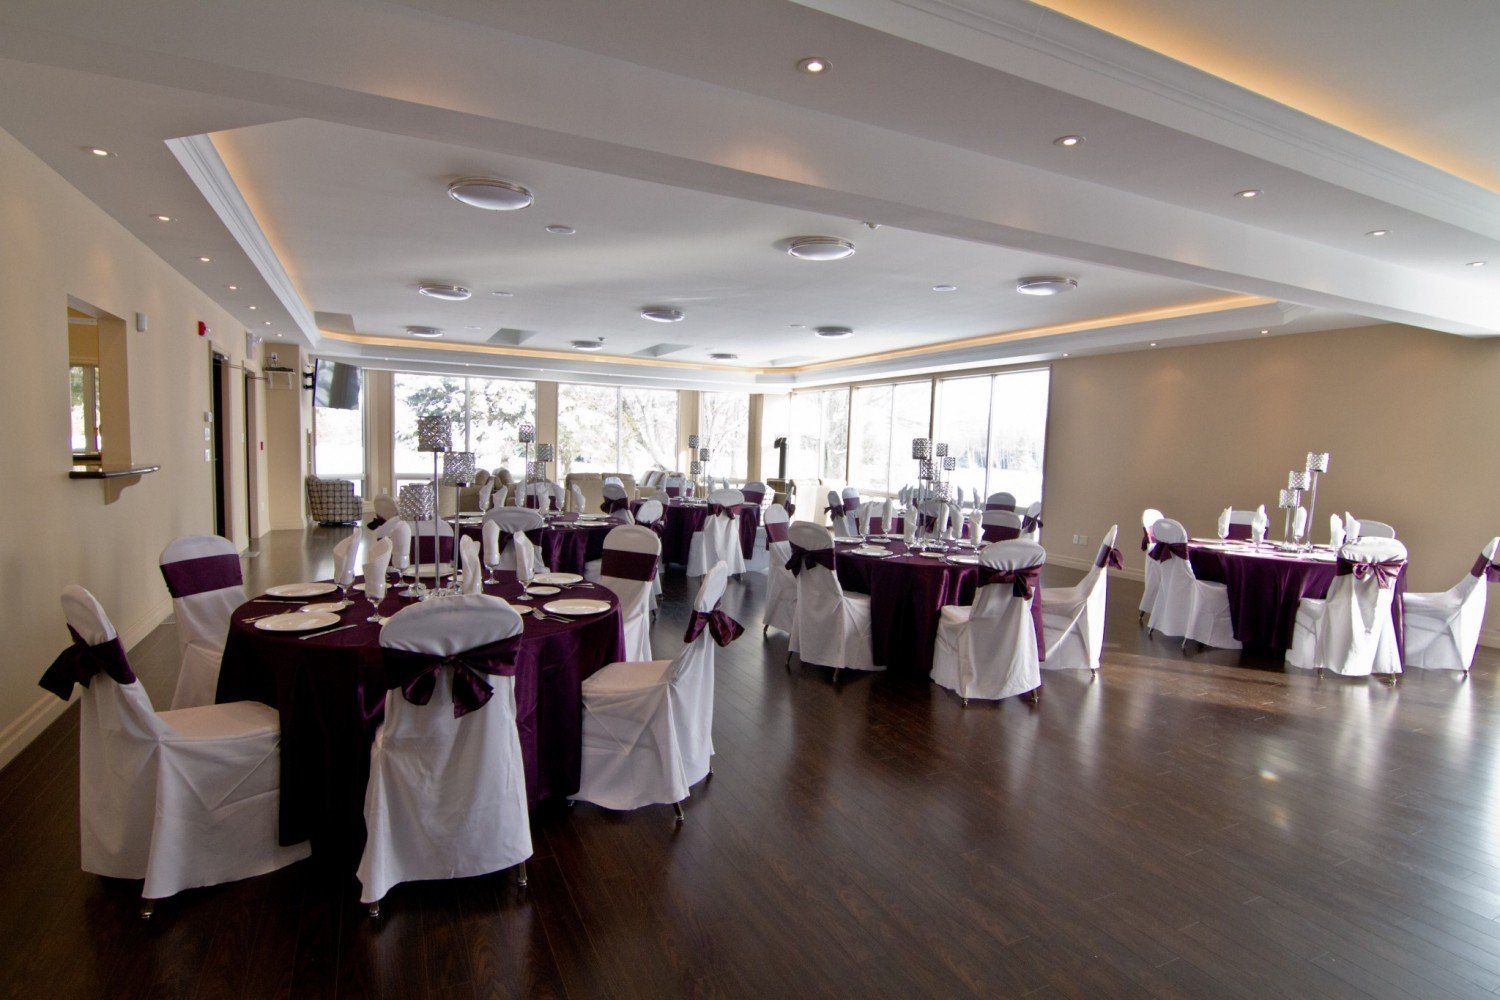 wedding and banquet room Shoreview community center offers elegant banquet rooms and outdoor pavilion are perfect for weddings, ceremonies, receptions, dinners and dances.